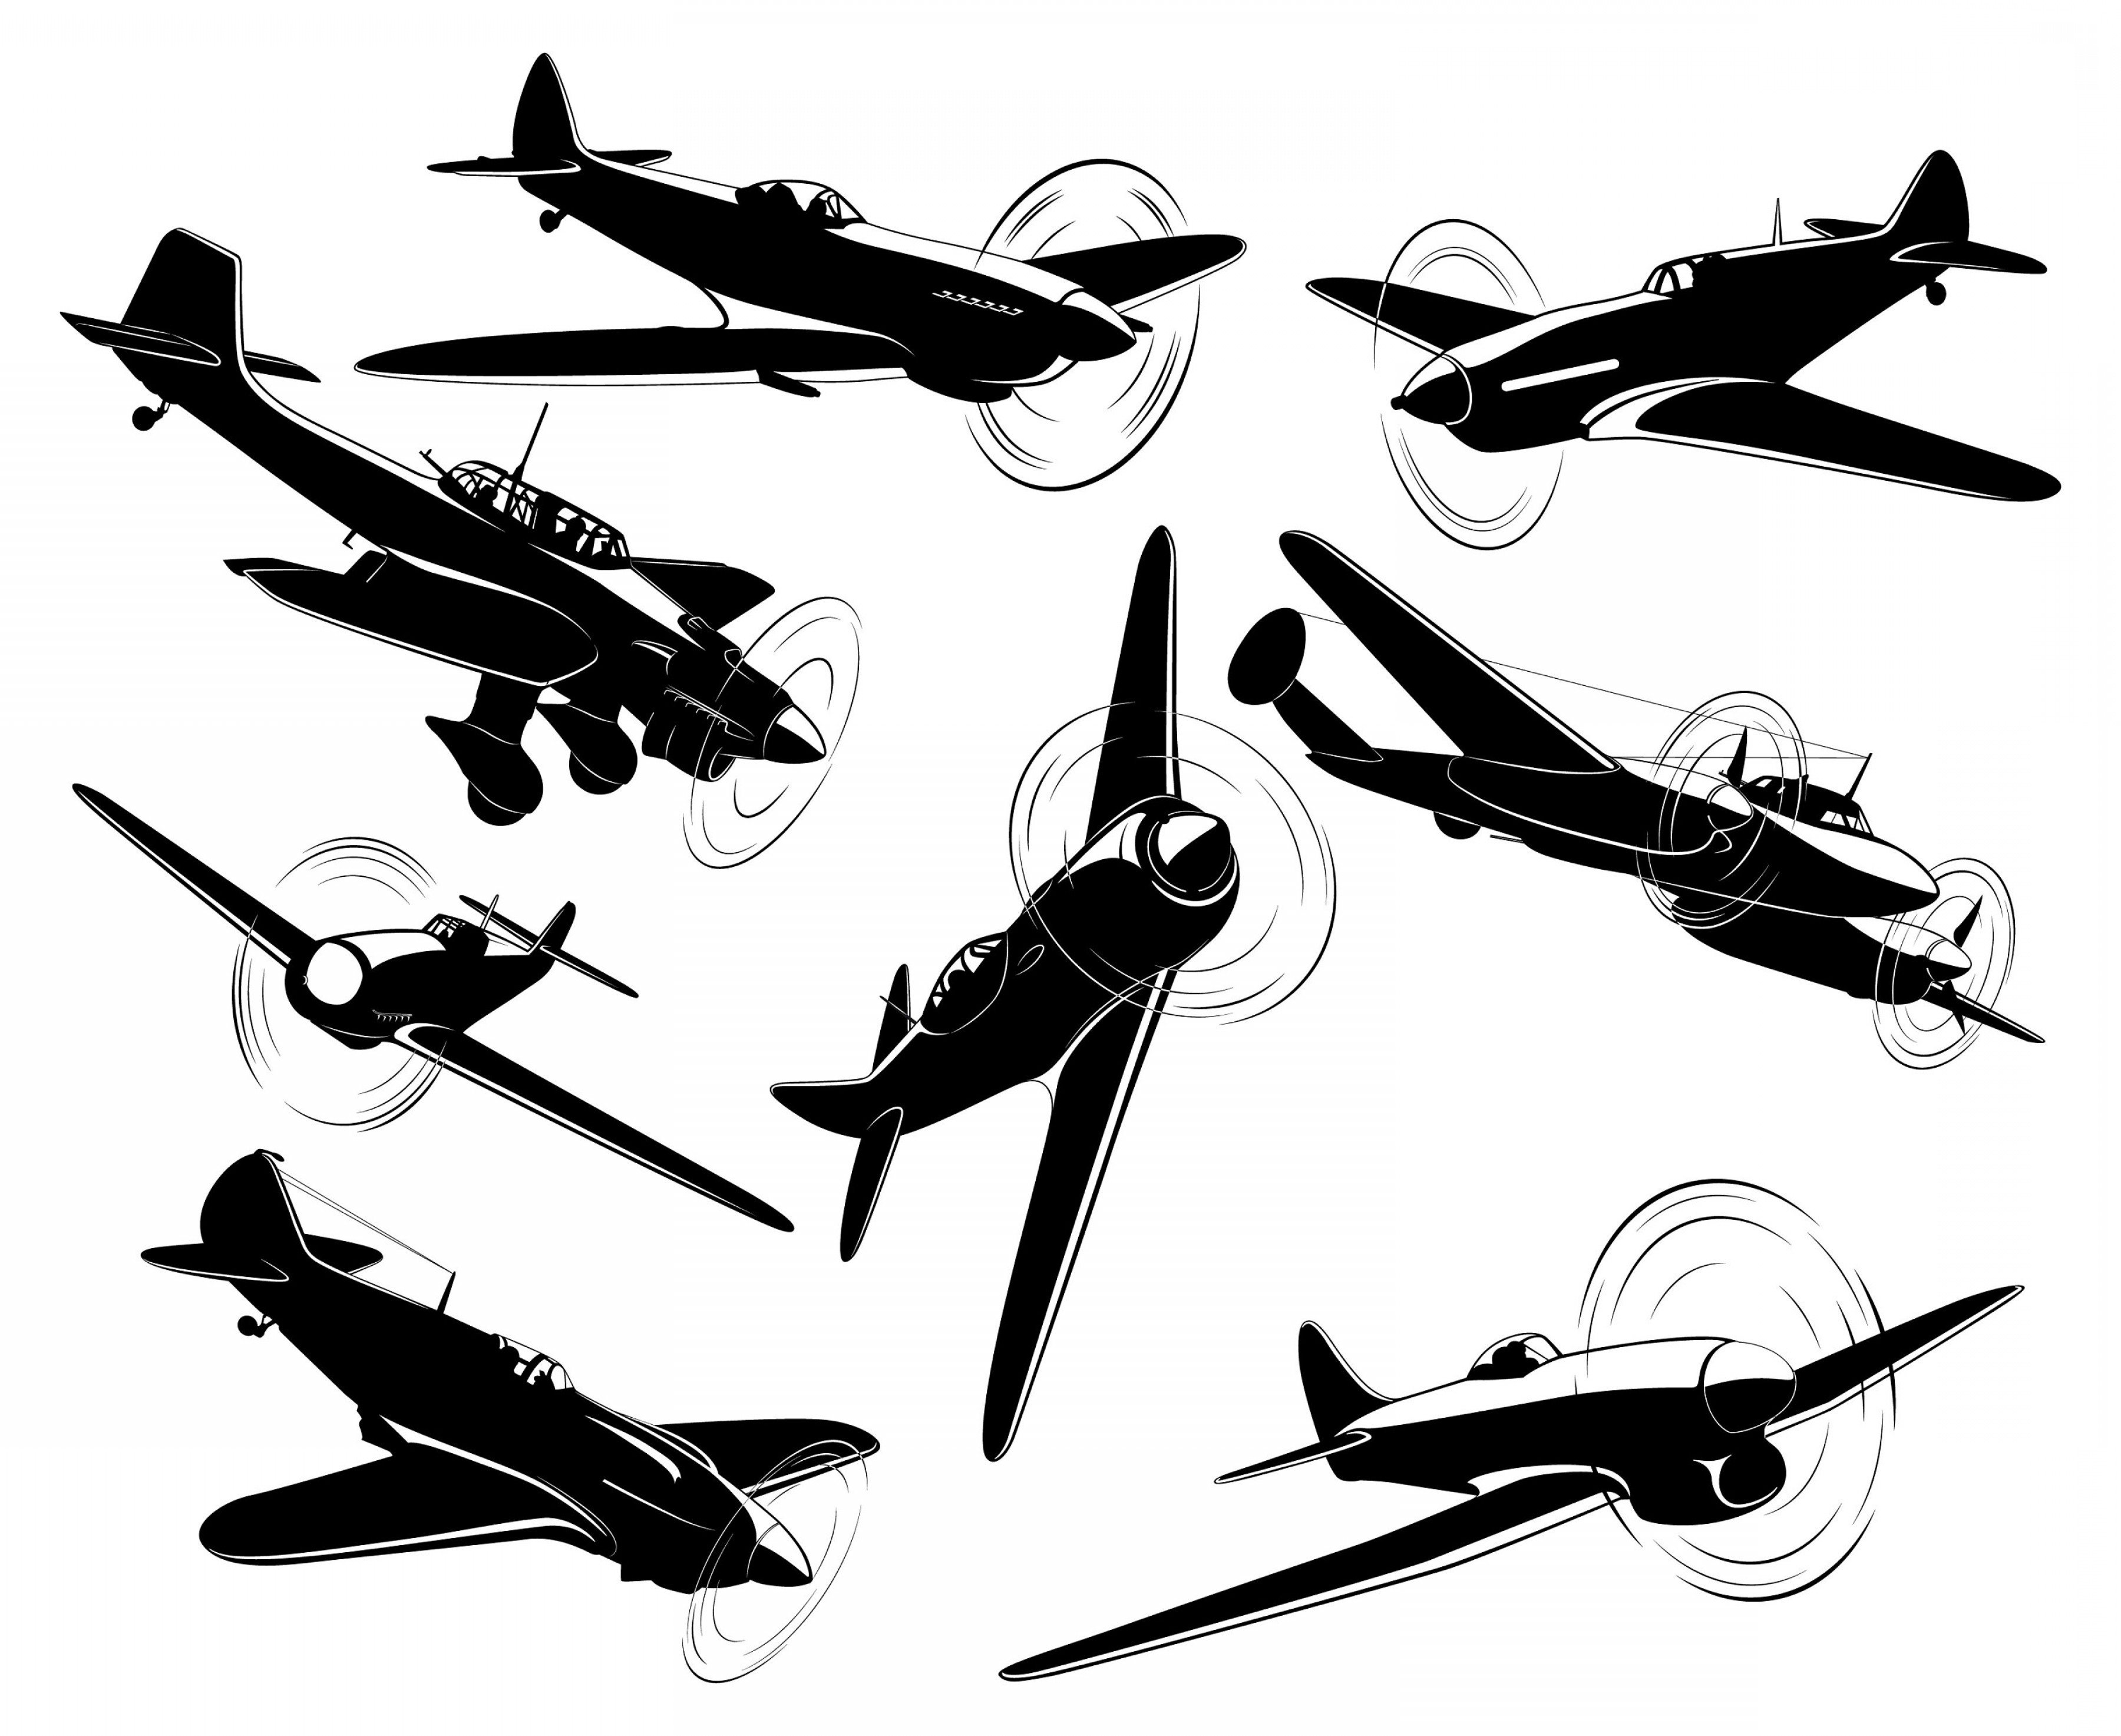 Old School Airplane Fighter Silhouette Vector: Plane War Aircraft Fighter Air Force